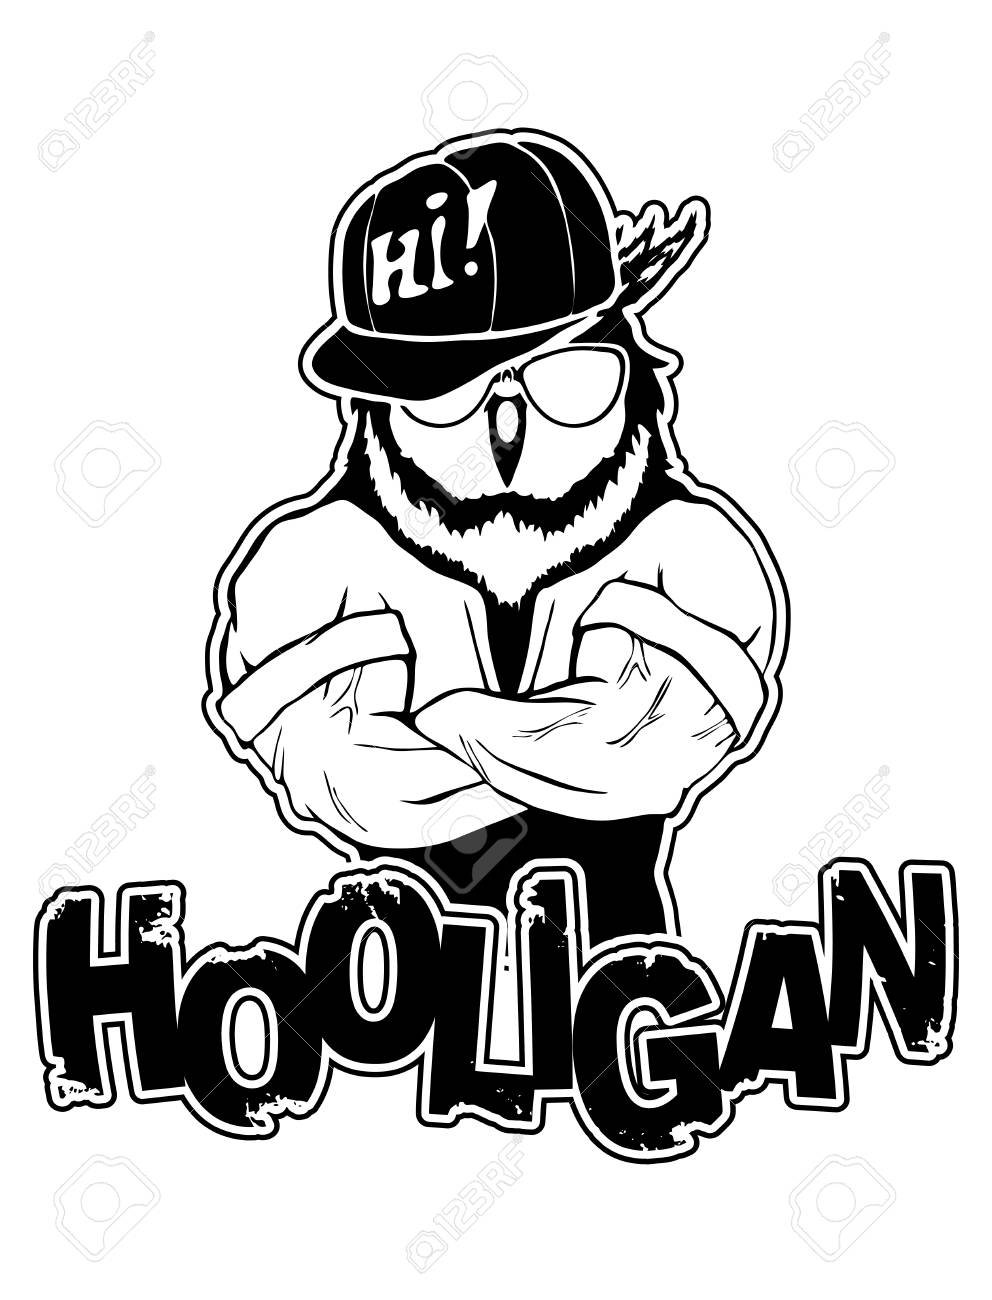 print on t shirt hooligan with a owl image royalty free cliparts